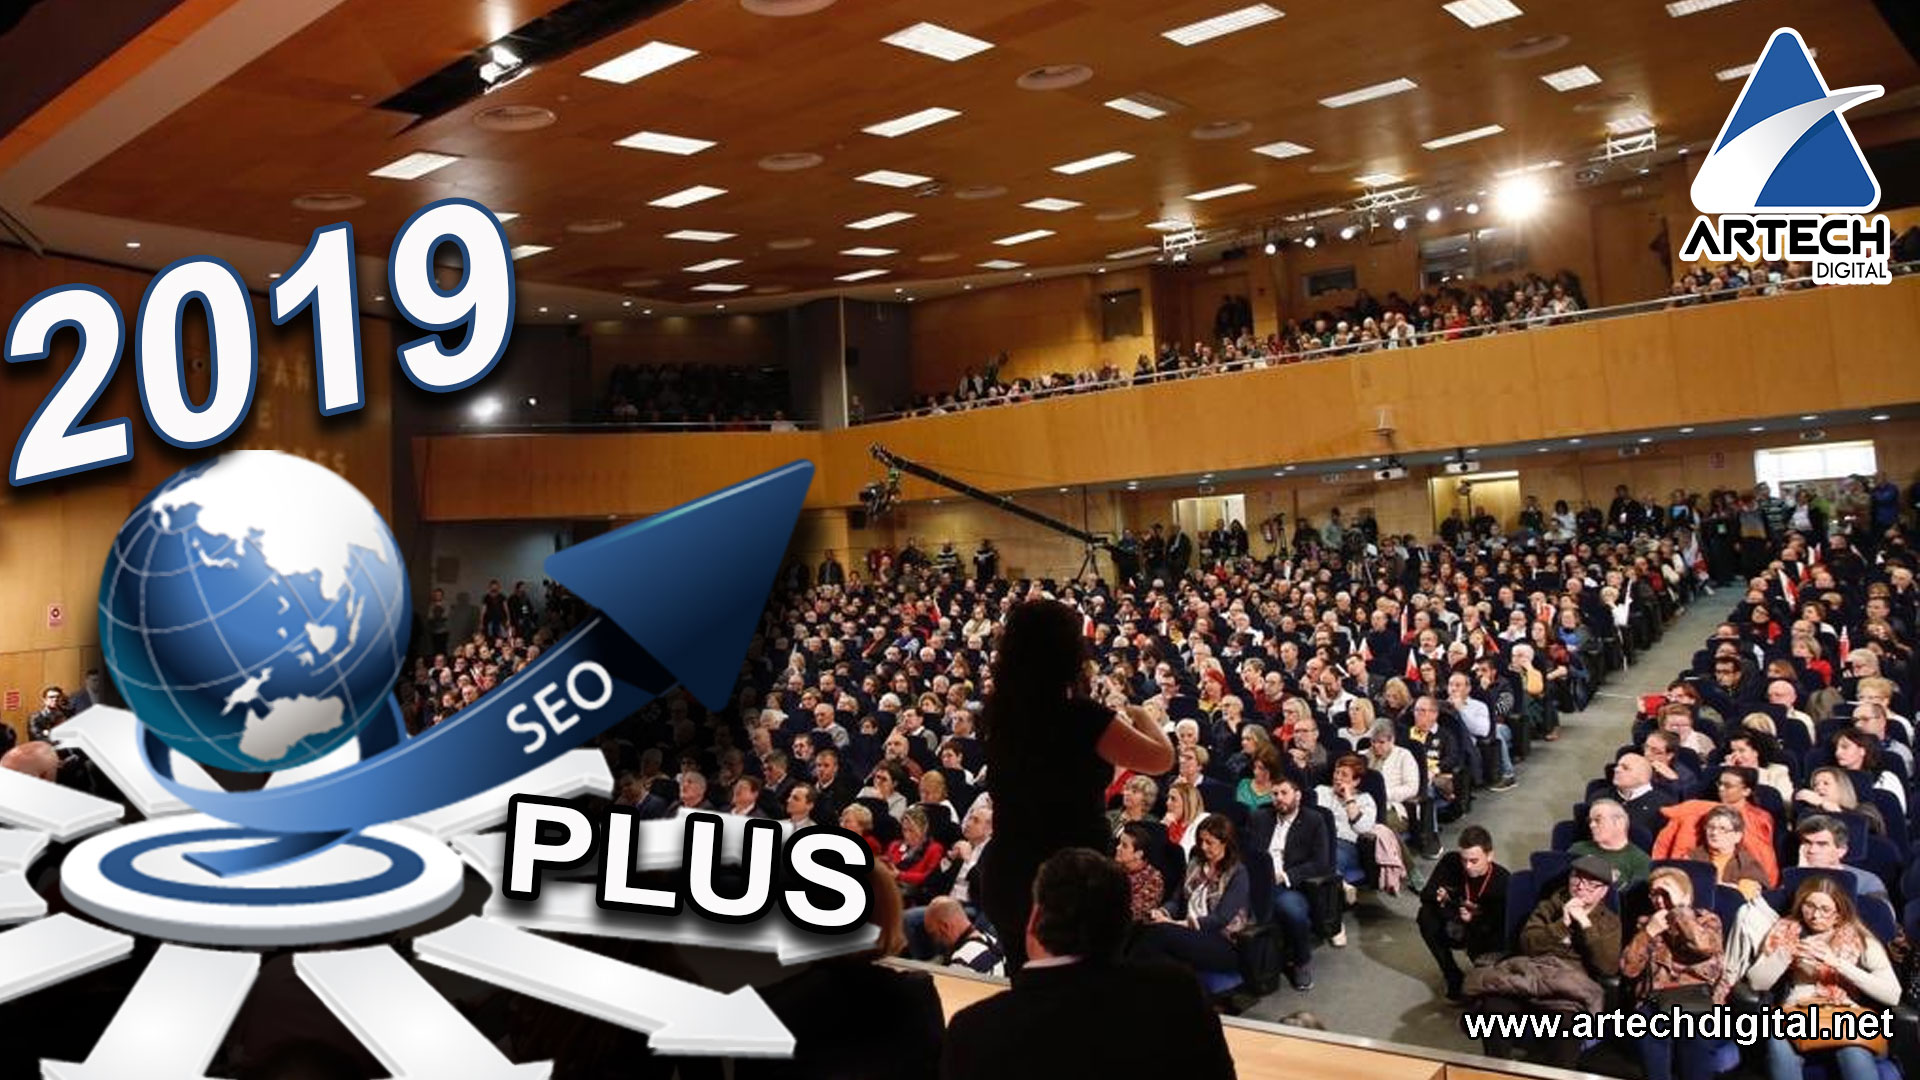 SEO Plus 2019 - España - Artech digital